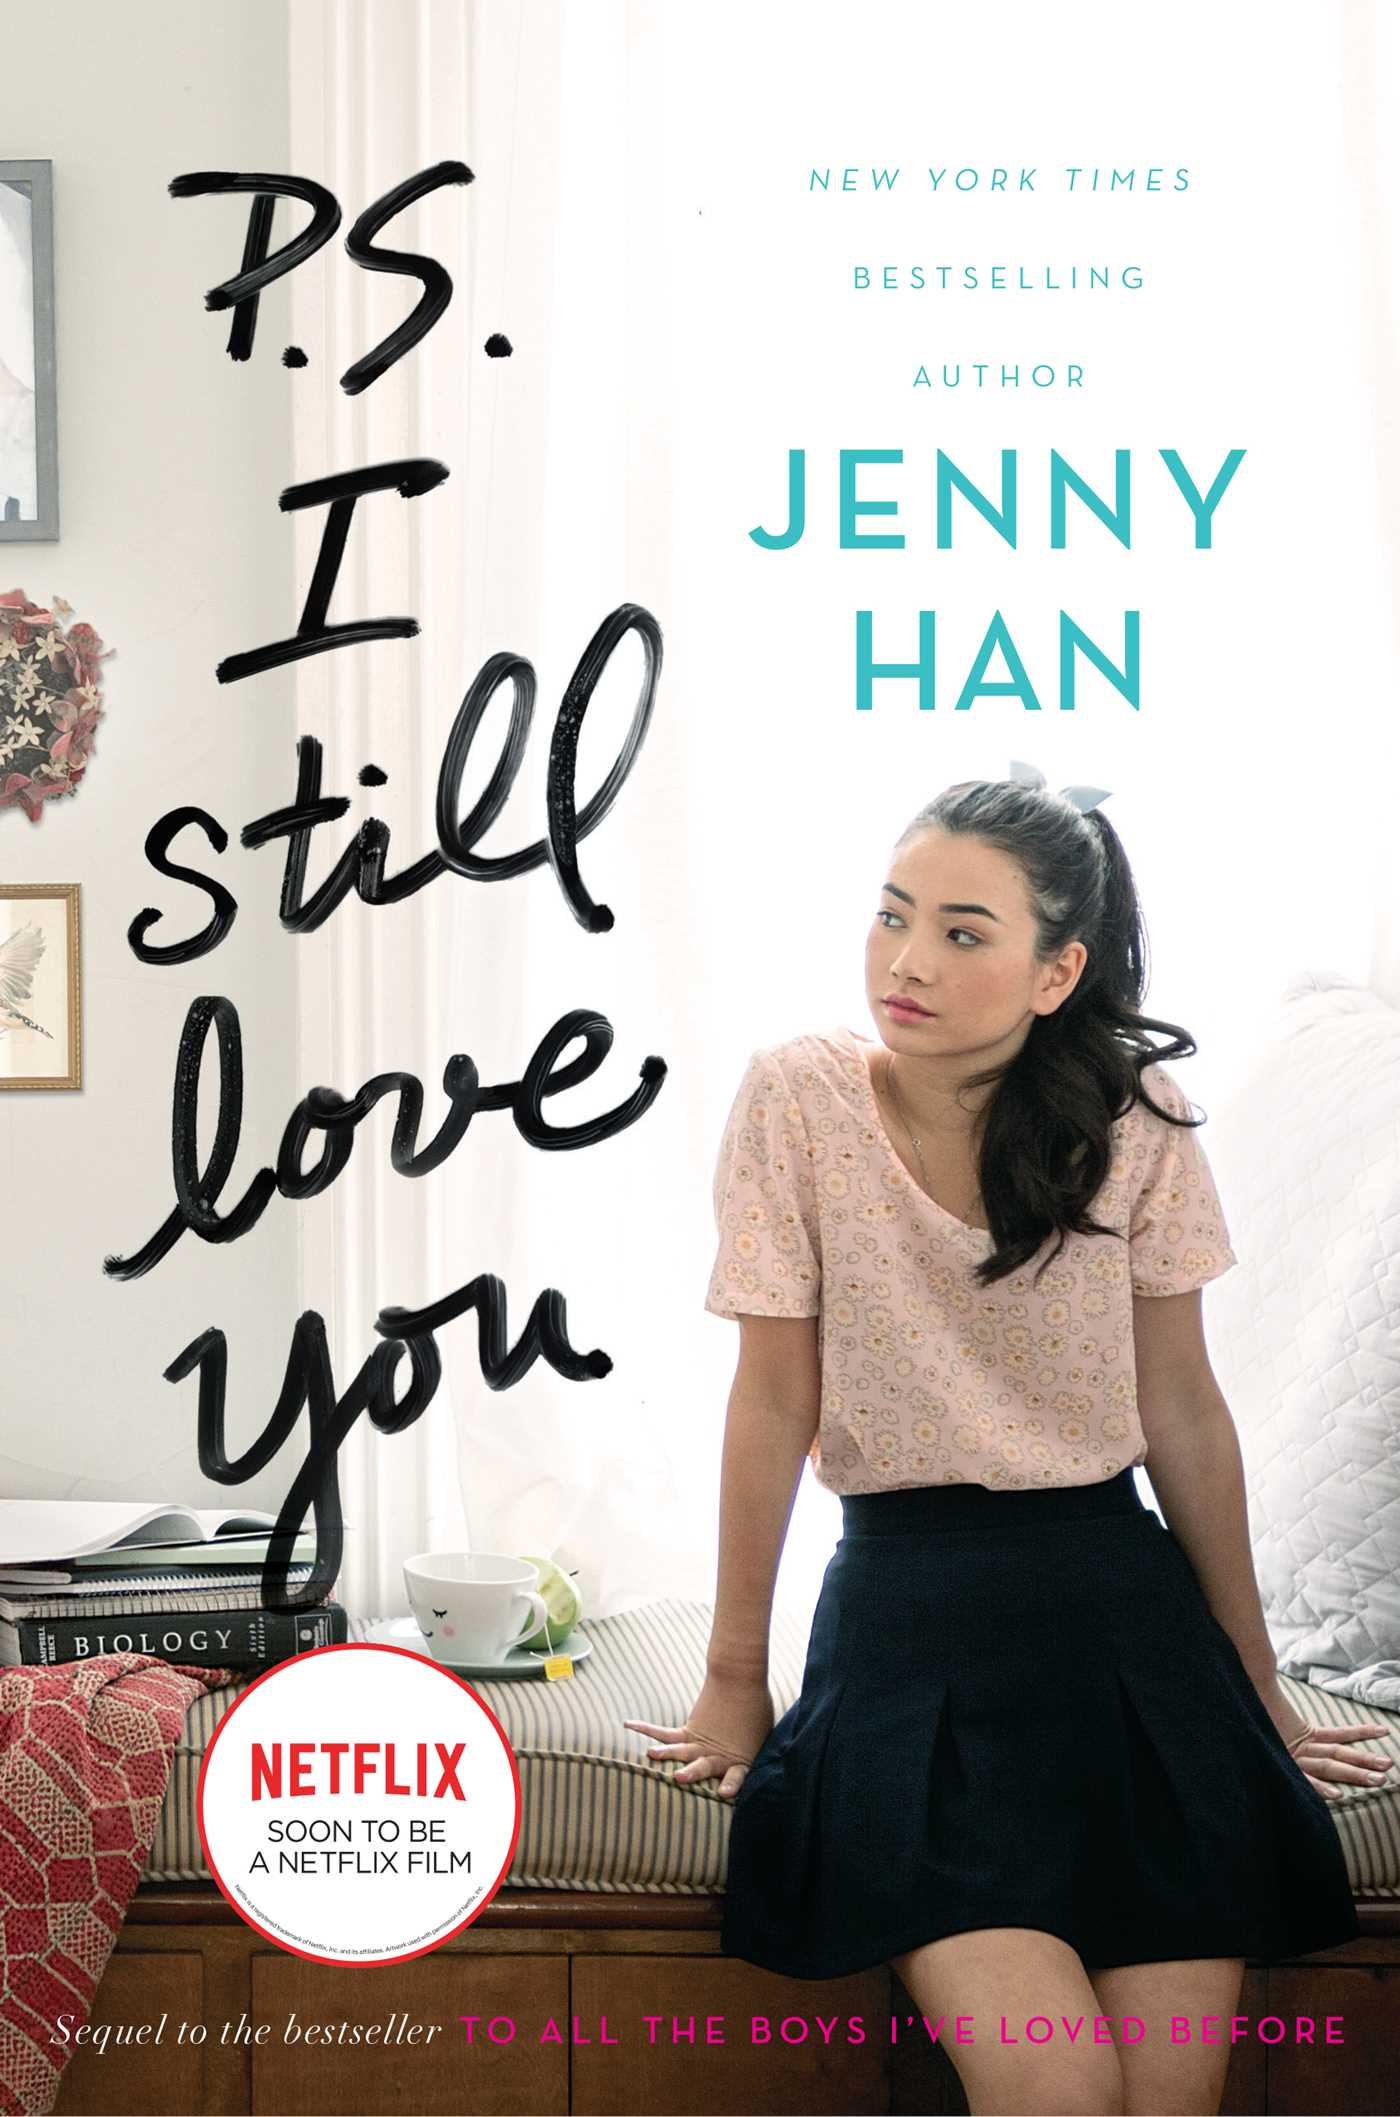 Image result for p.s. i still love you jenny han